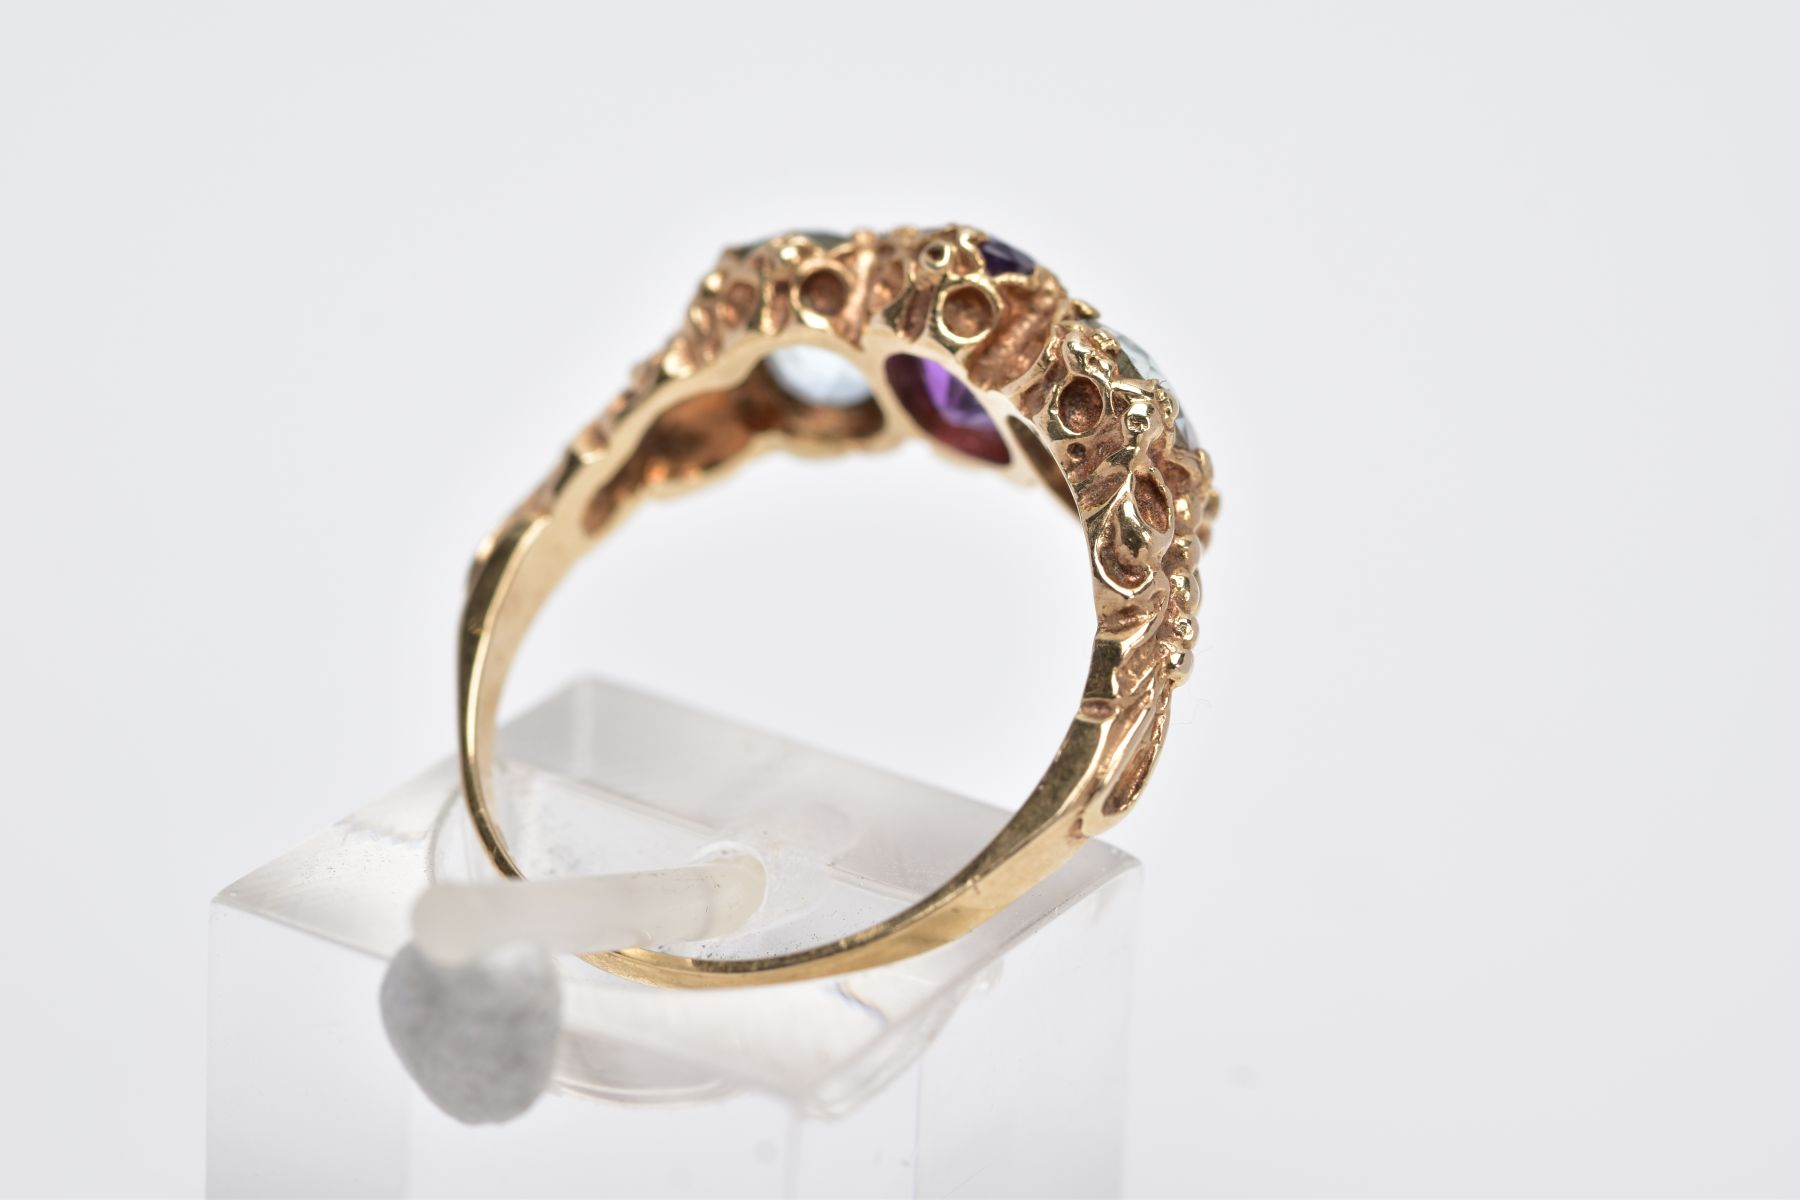 A 9CT GOLD THREE STONE RING, centring on an oval cut amethyst, flanked with two oval cut - Image 3 of 4